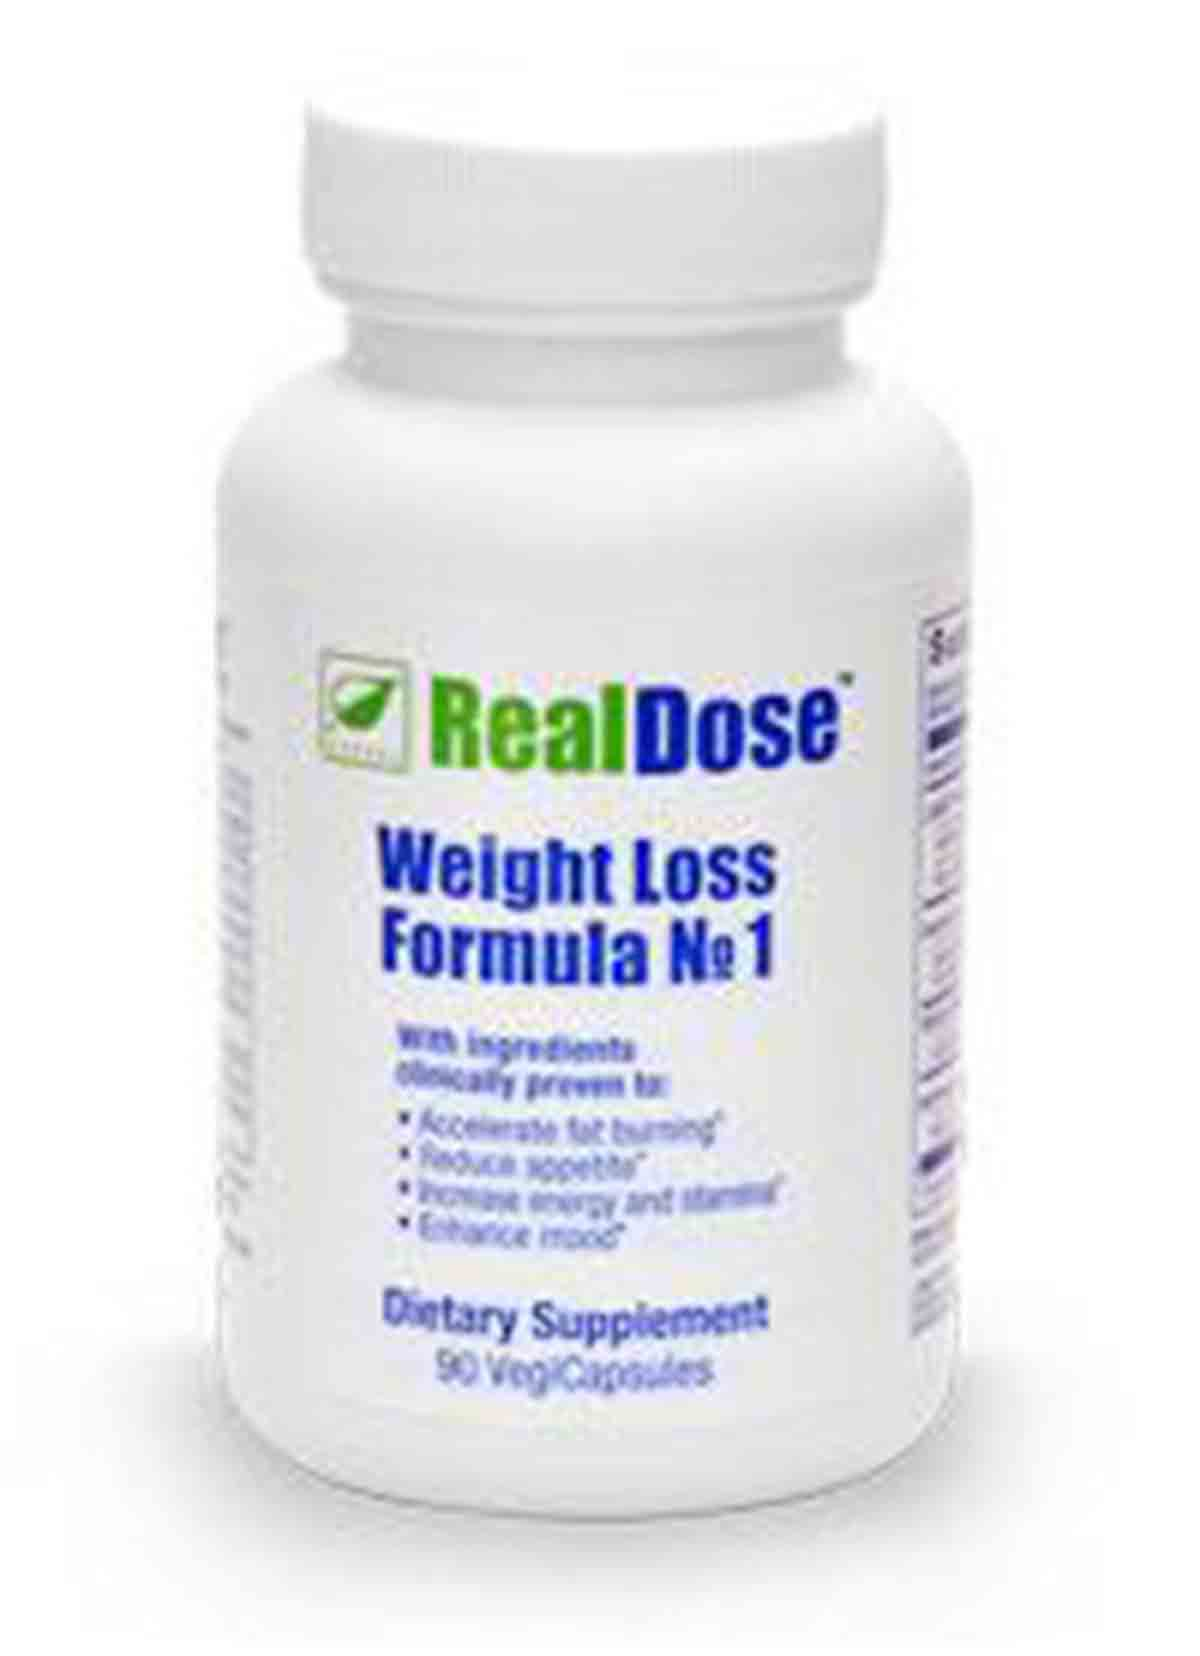 Real Dose Weight Loss Formula No1